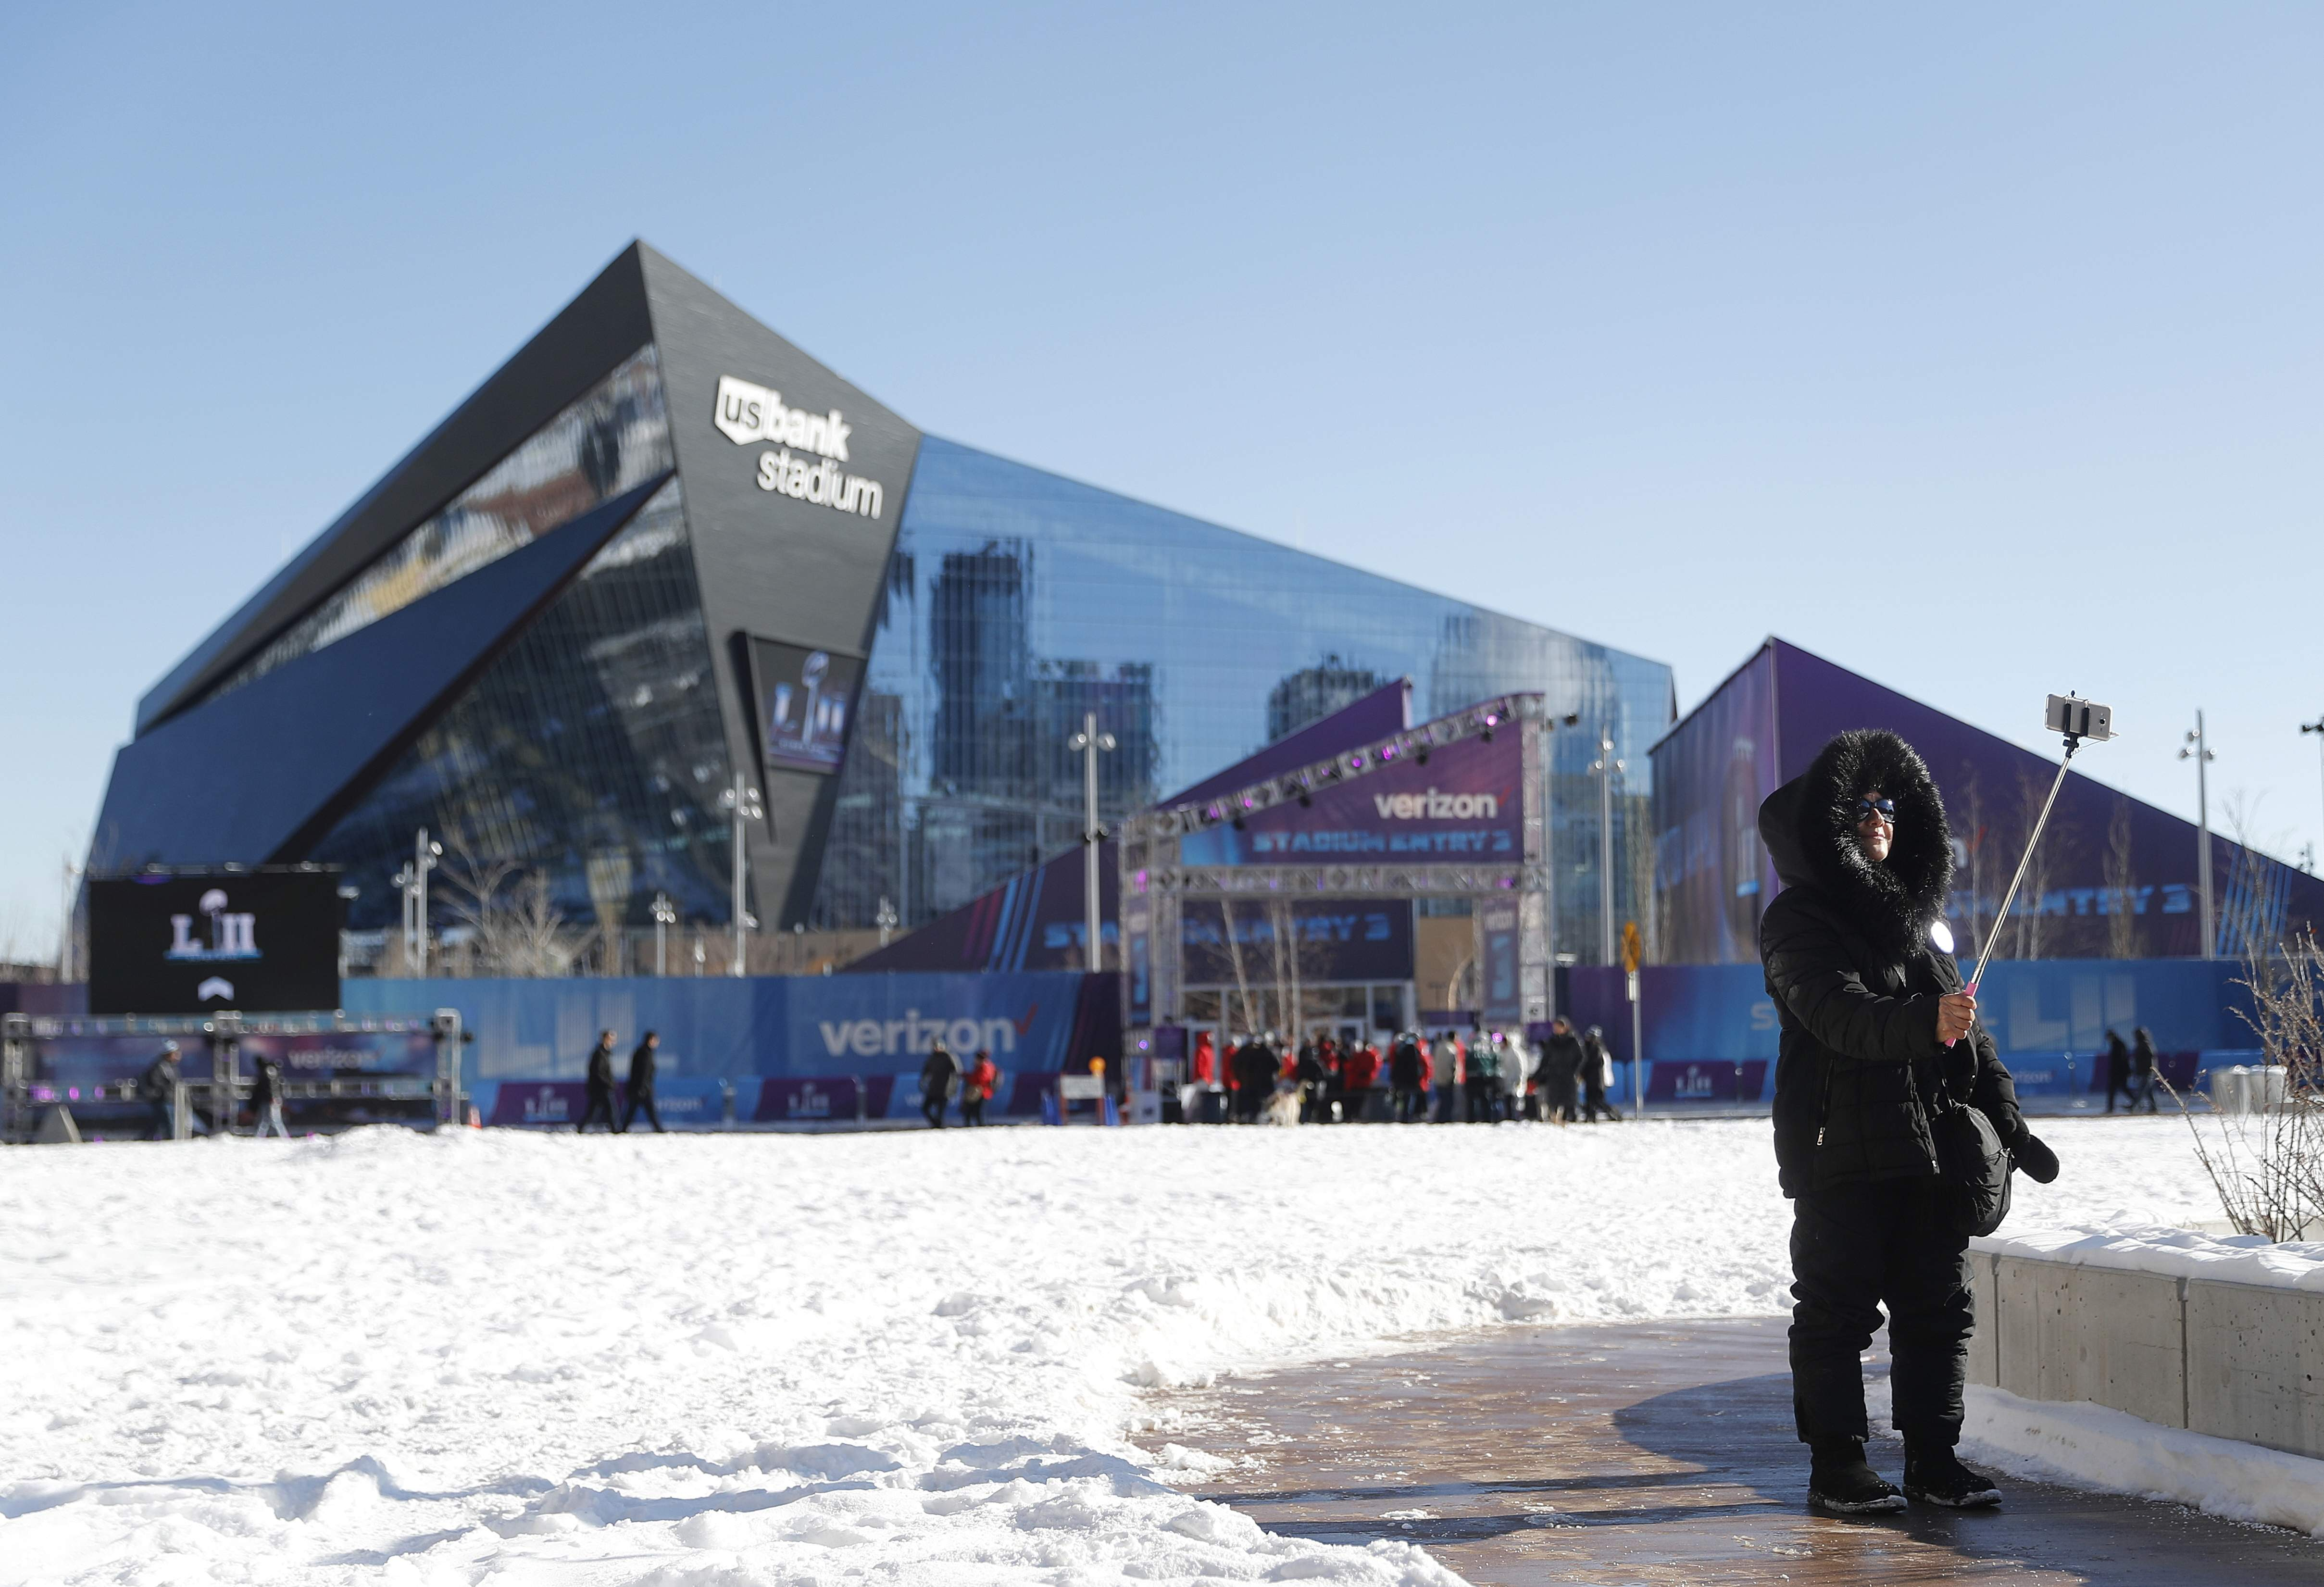 Beno Naeunan takes a selfie outside U.S. Bank Stadium before the NFL Super Bowl 52 football game between the Philadelphia Eagles and the New England Patriots Sunday, Feb. 4, 2018, in Minneapolis. (AP Photo/Jeff Roberson)